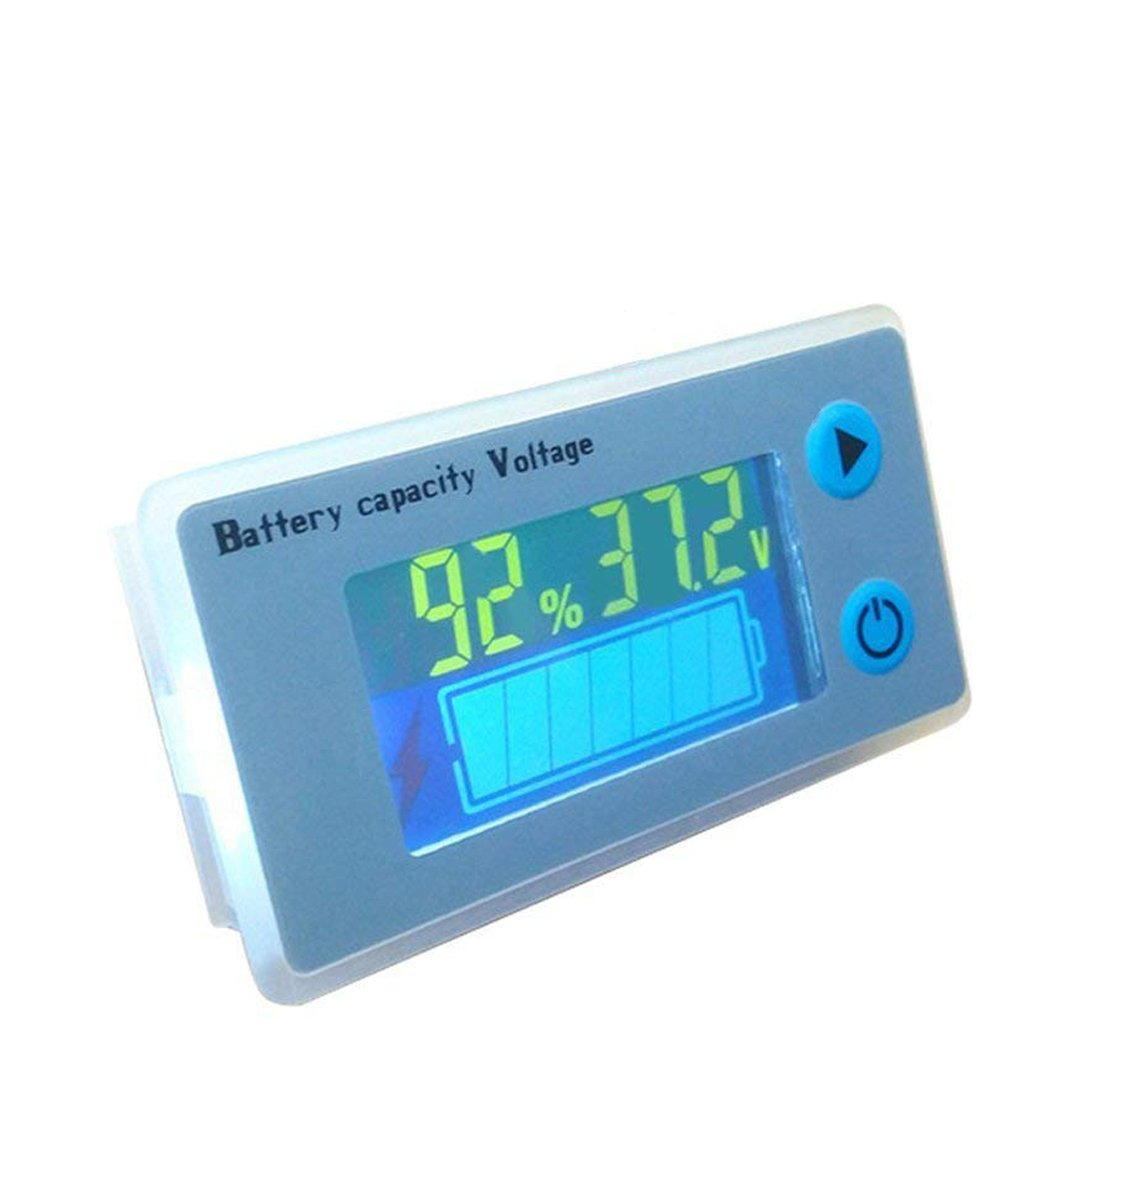 CPTDCL Multifunction 48V LCD Lead Acid Battery Capacity Meter Voltmeter Temperature Display Battery Fuel Gauge Indicator Voltage Monitor